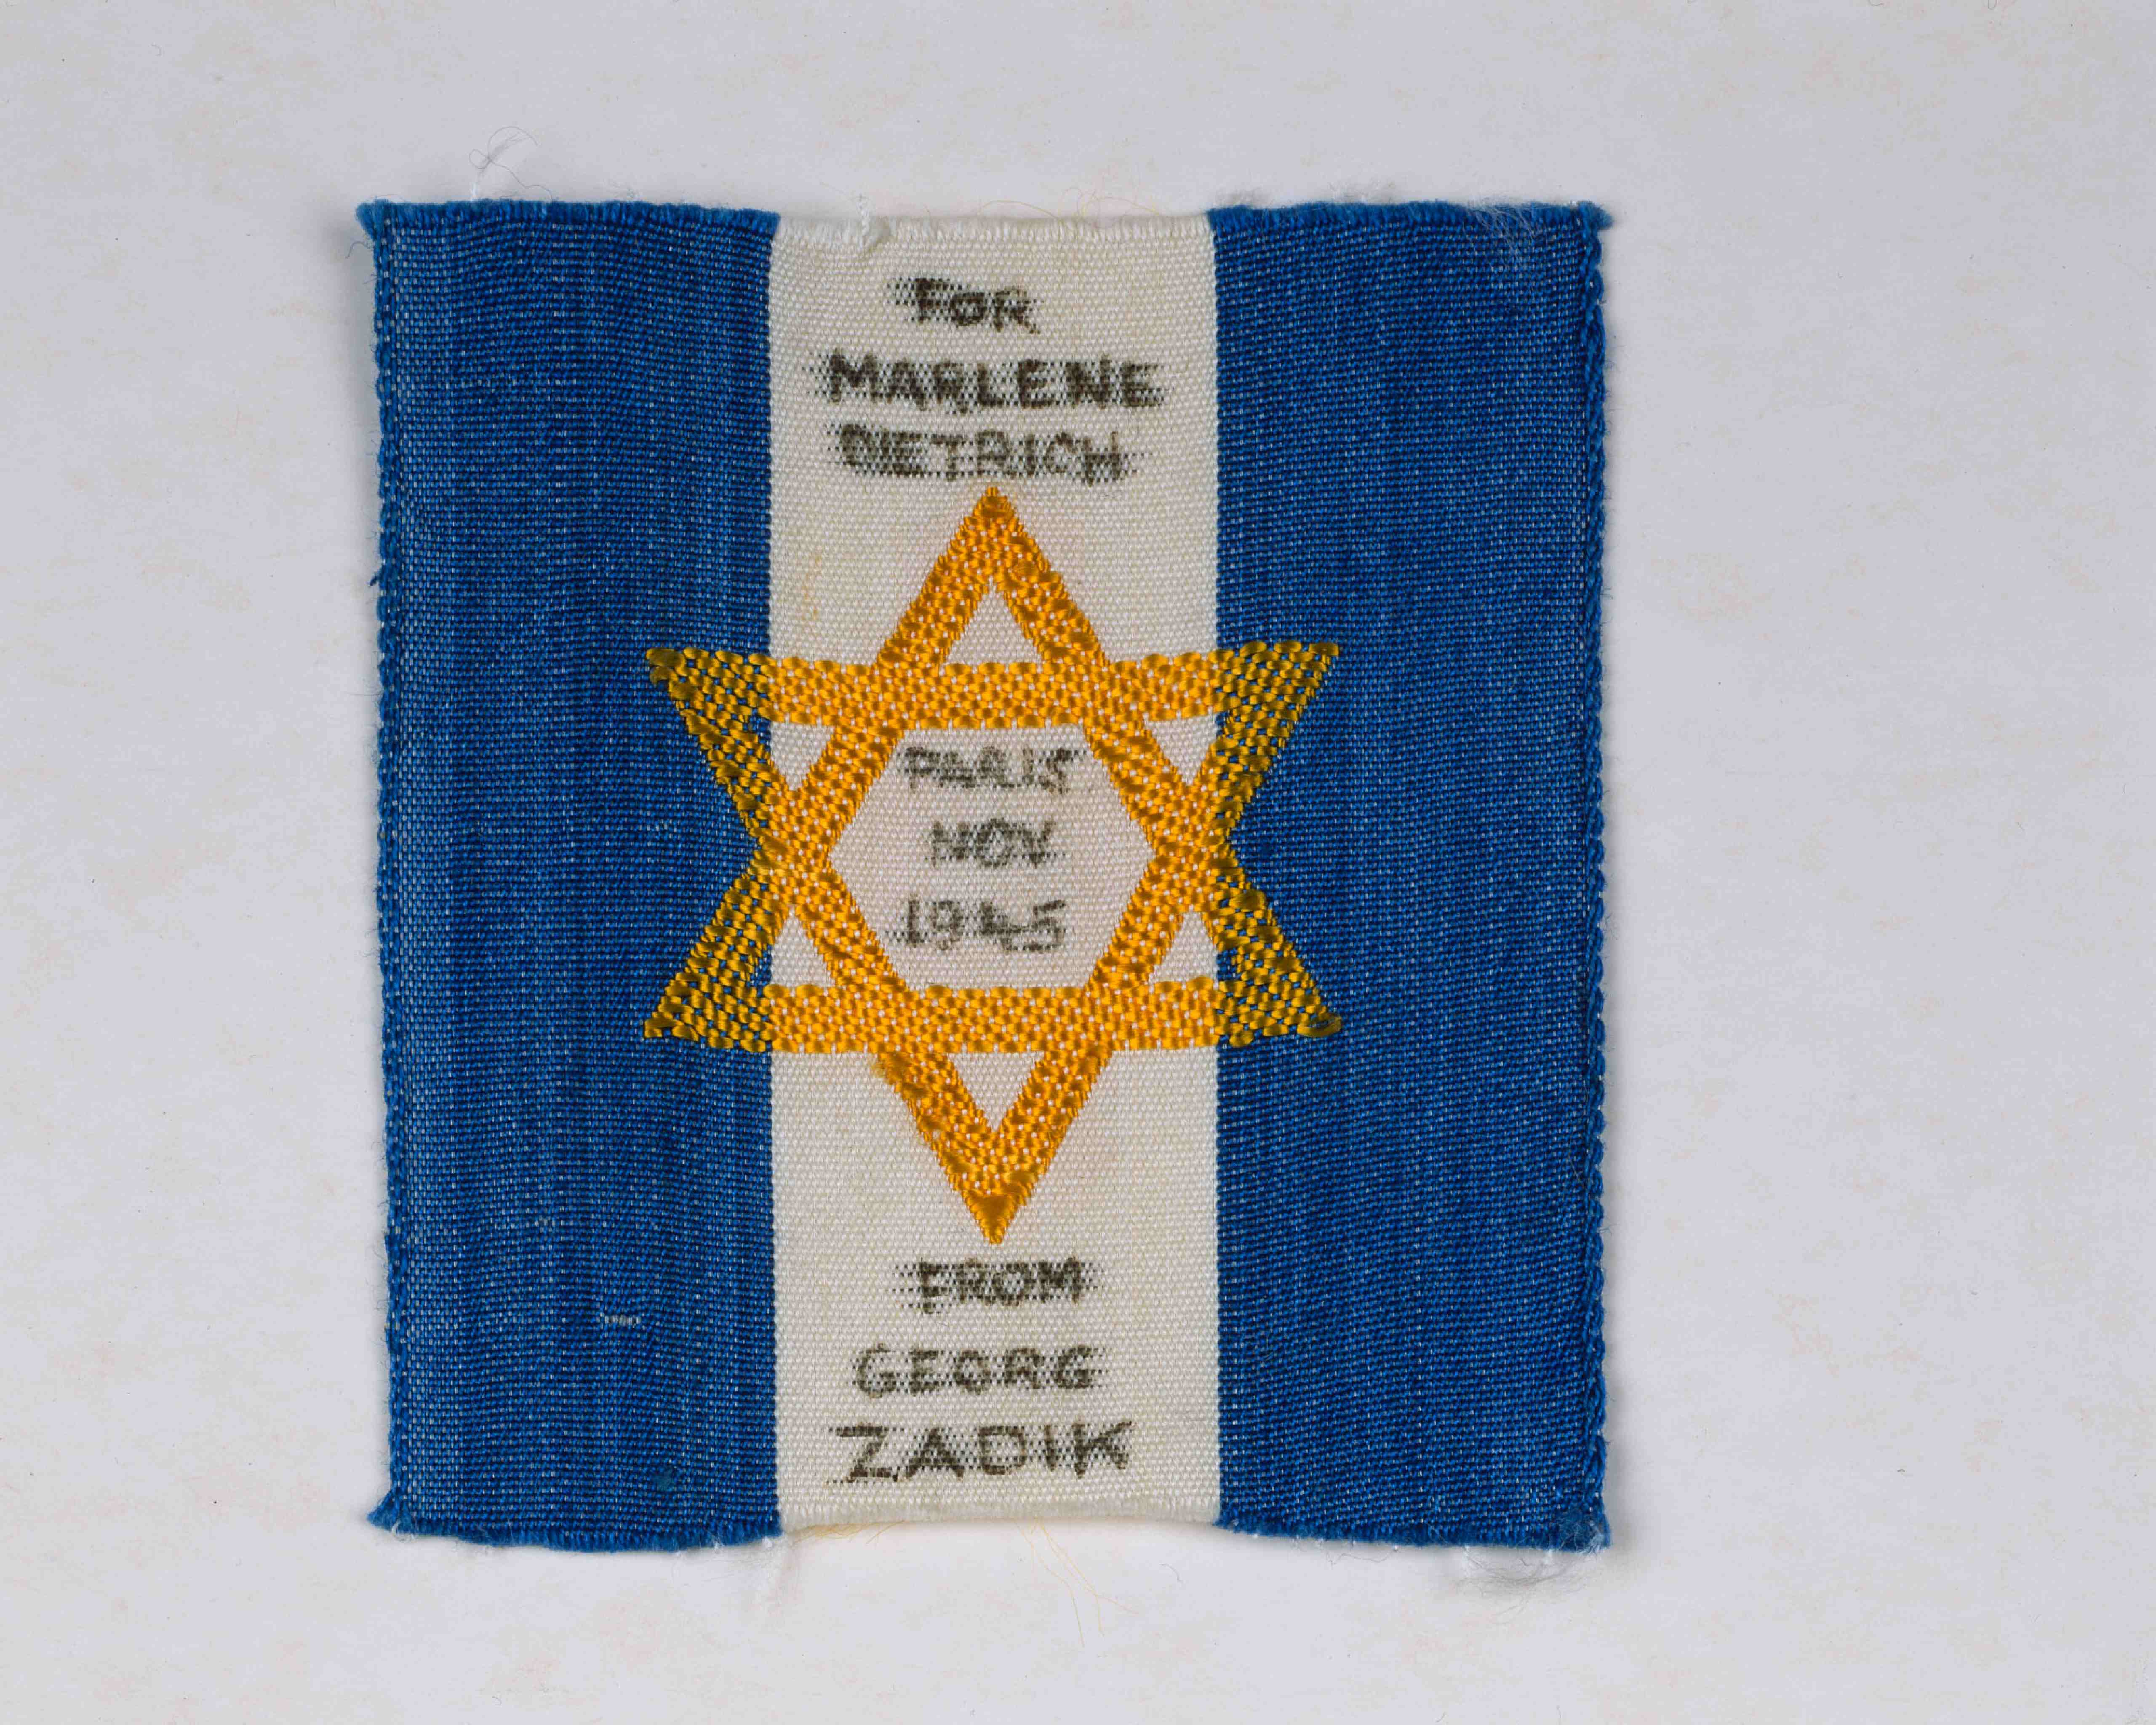 "Fan gift to Marlene Dietrich: Badge with a Star of David and the dedication ""For Marlene Dietrich – Paris Nov. 1945 – from Georg Zadik"""